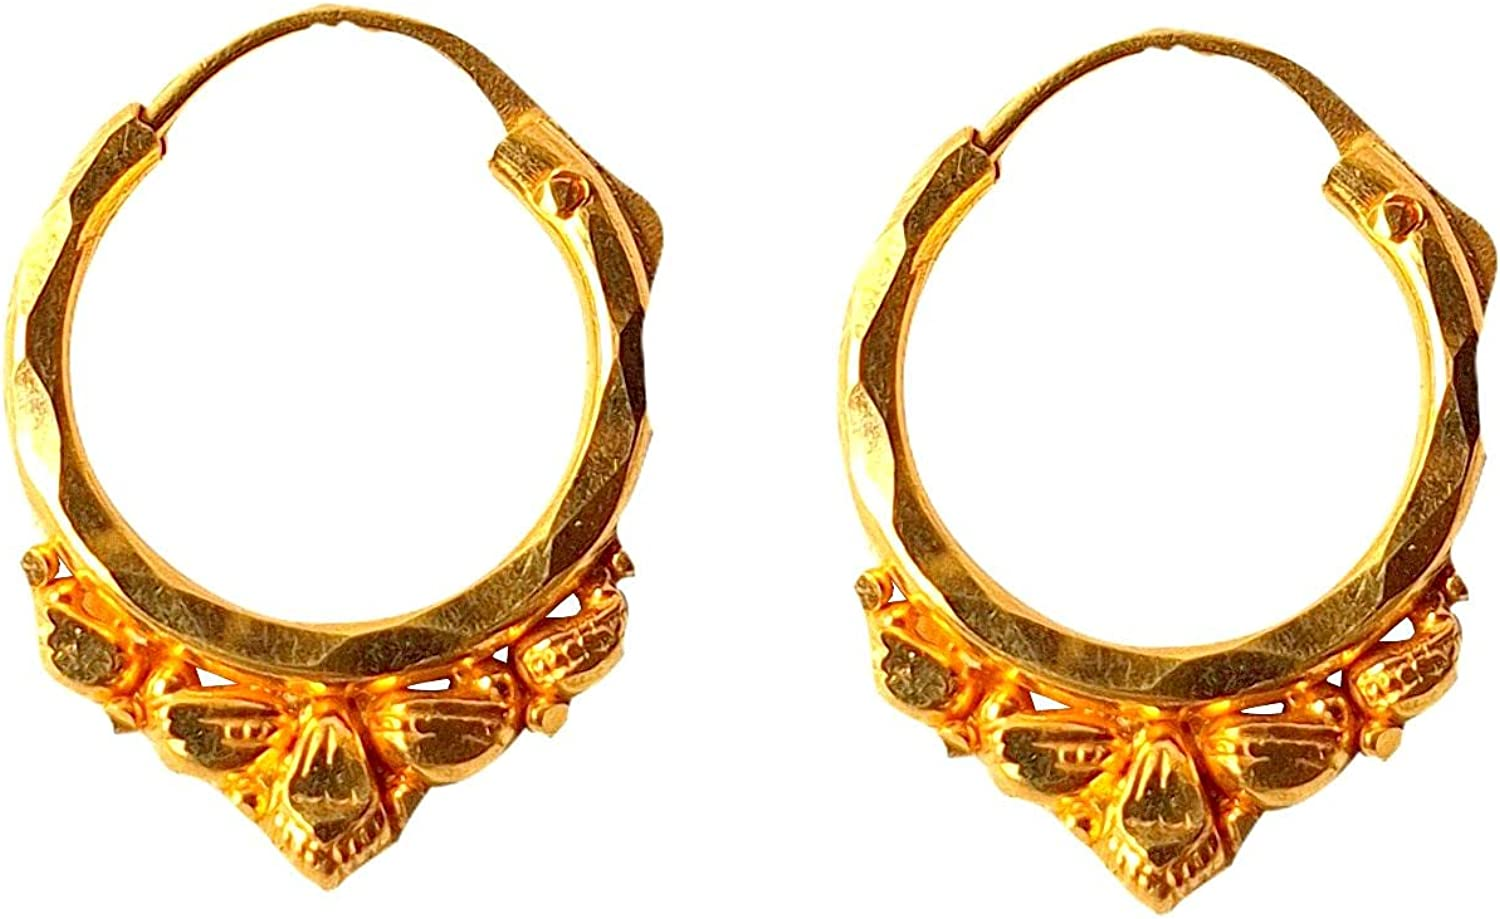 Certified Solid 22K/18K Yellow Fine Gold Carved Gorgeous Design Hoop Earrings Available In Both 22 Carat And 18 Carat Fine Gold, For Women,Girls,Kids,Gifts,Bridal,Wedding,Engagement & Celebrations